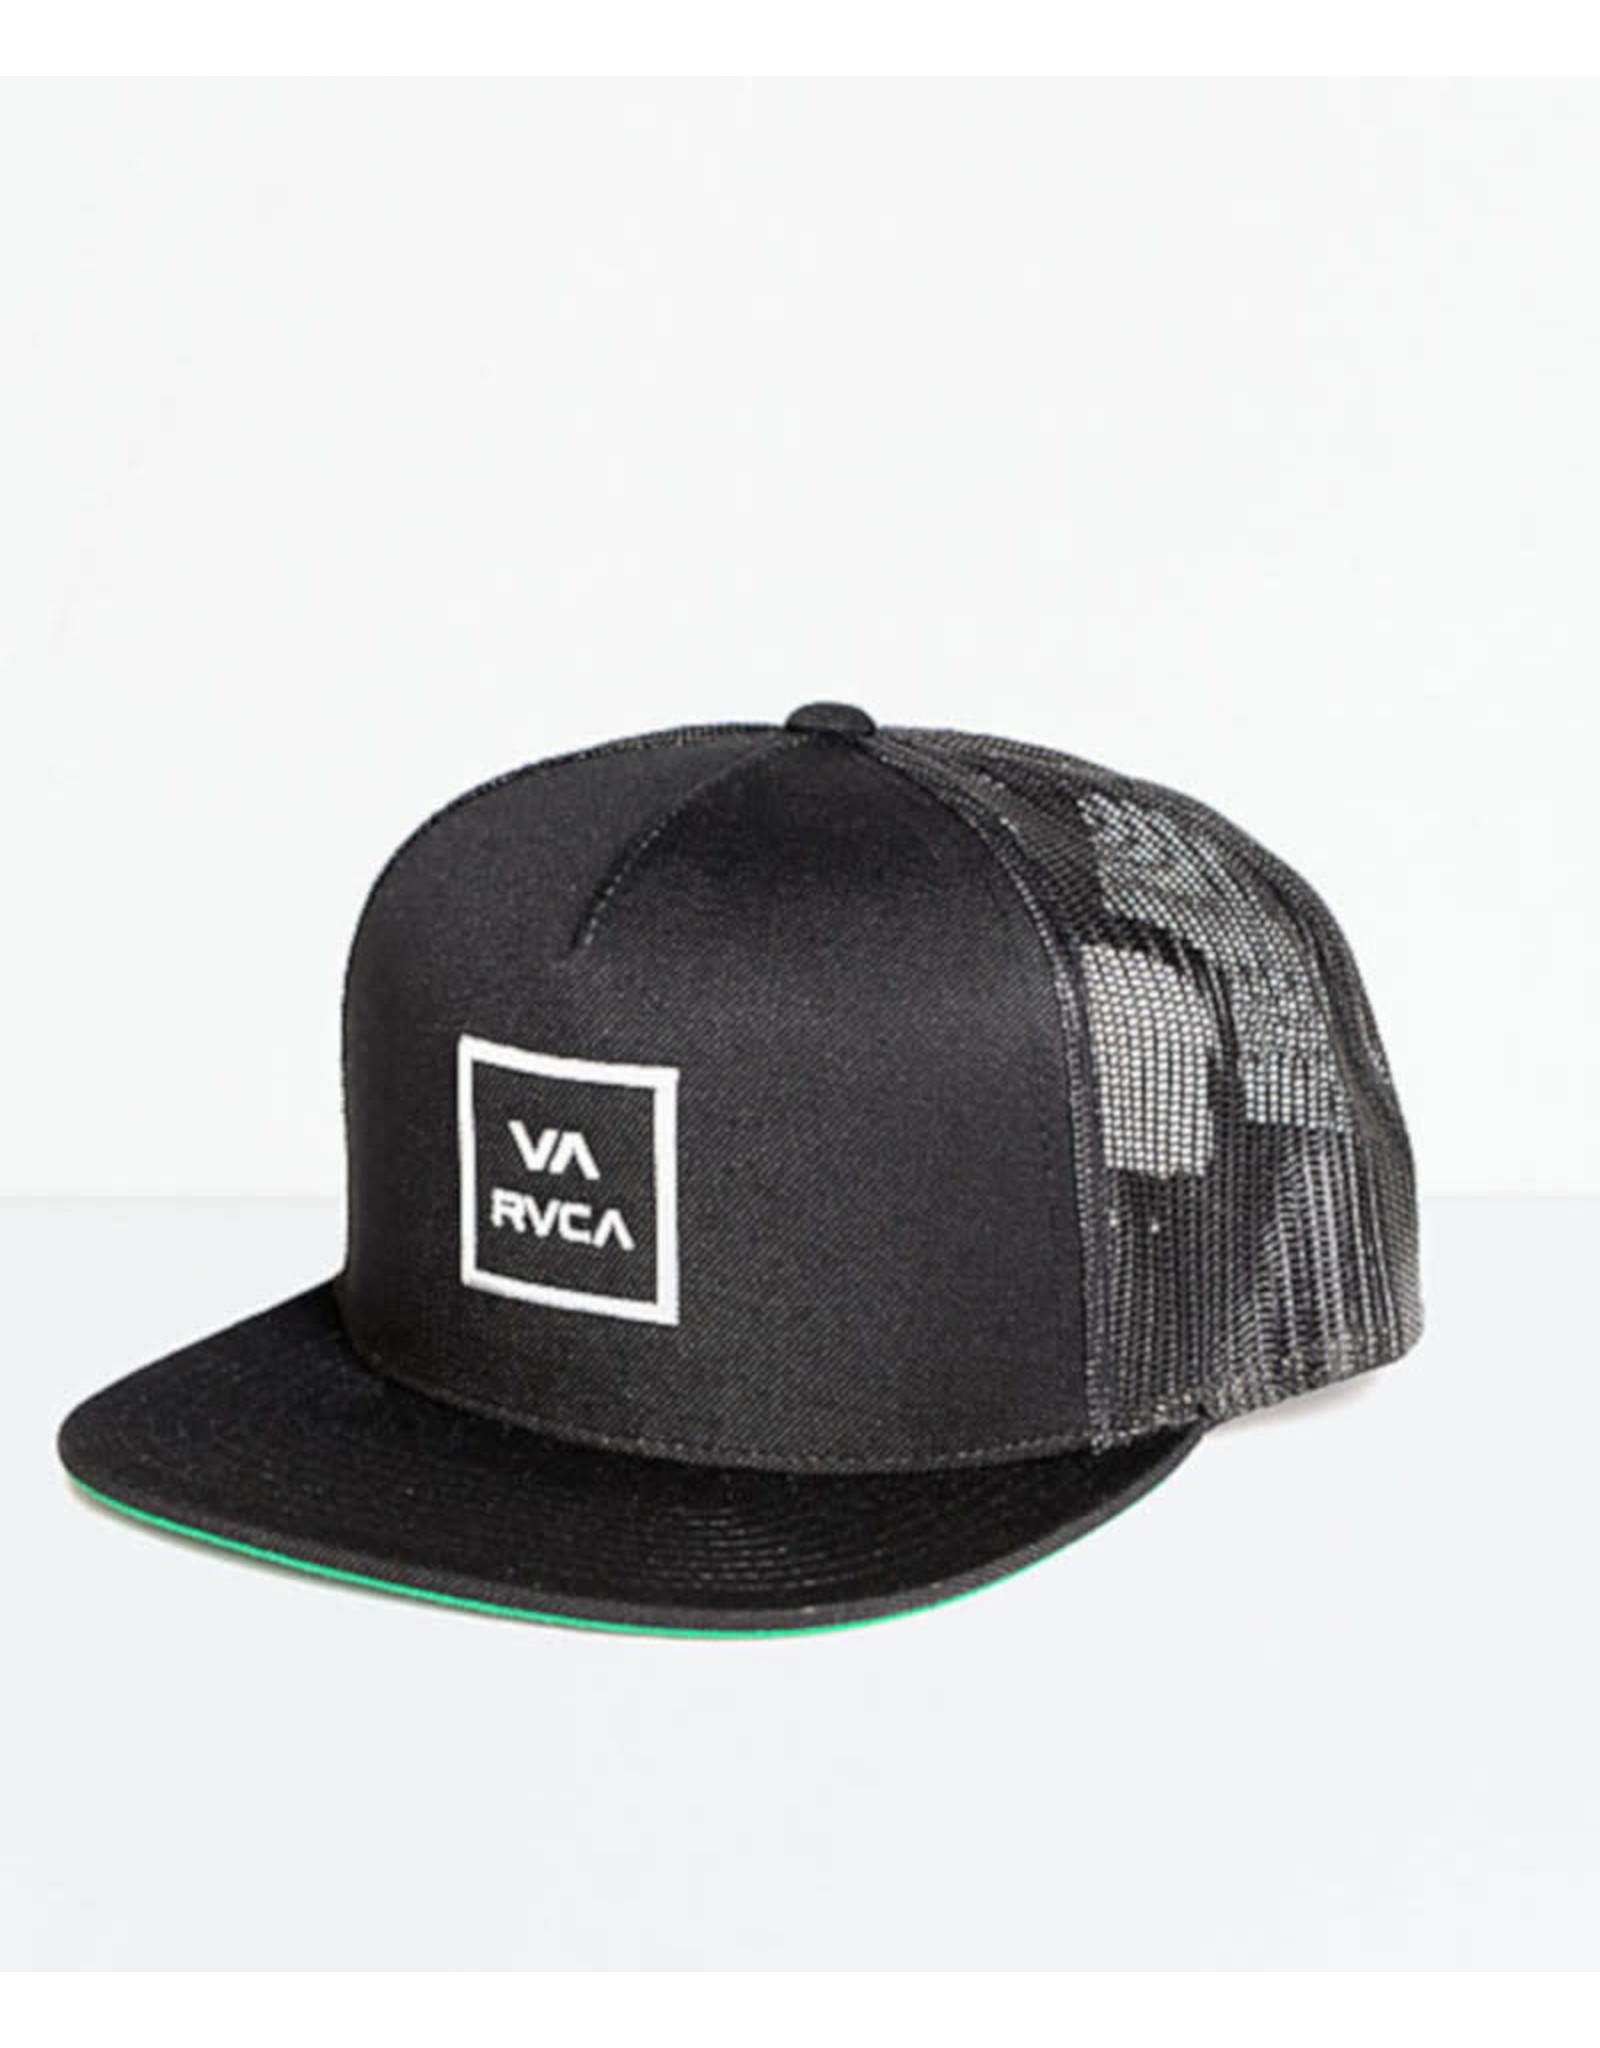 RVCA RVCA All The Way Cap